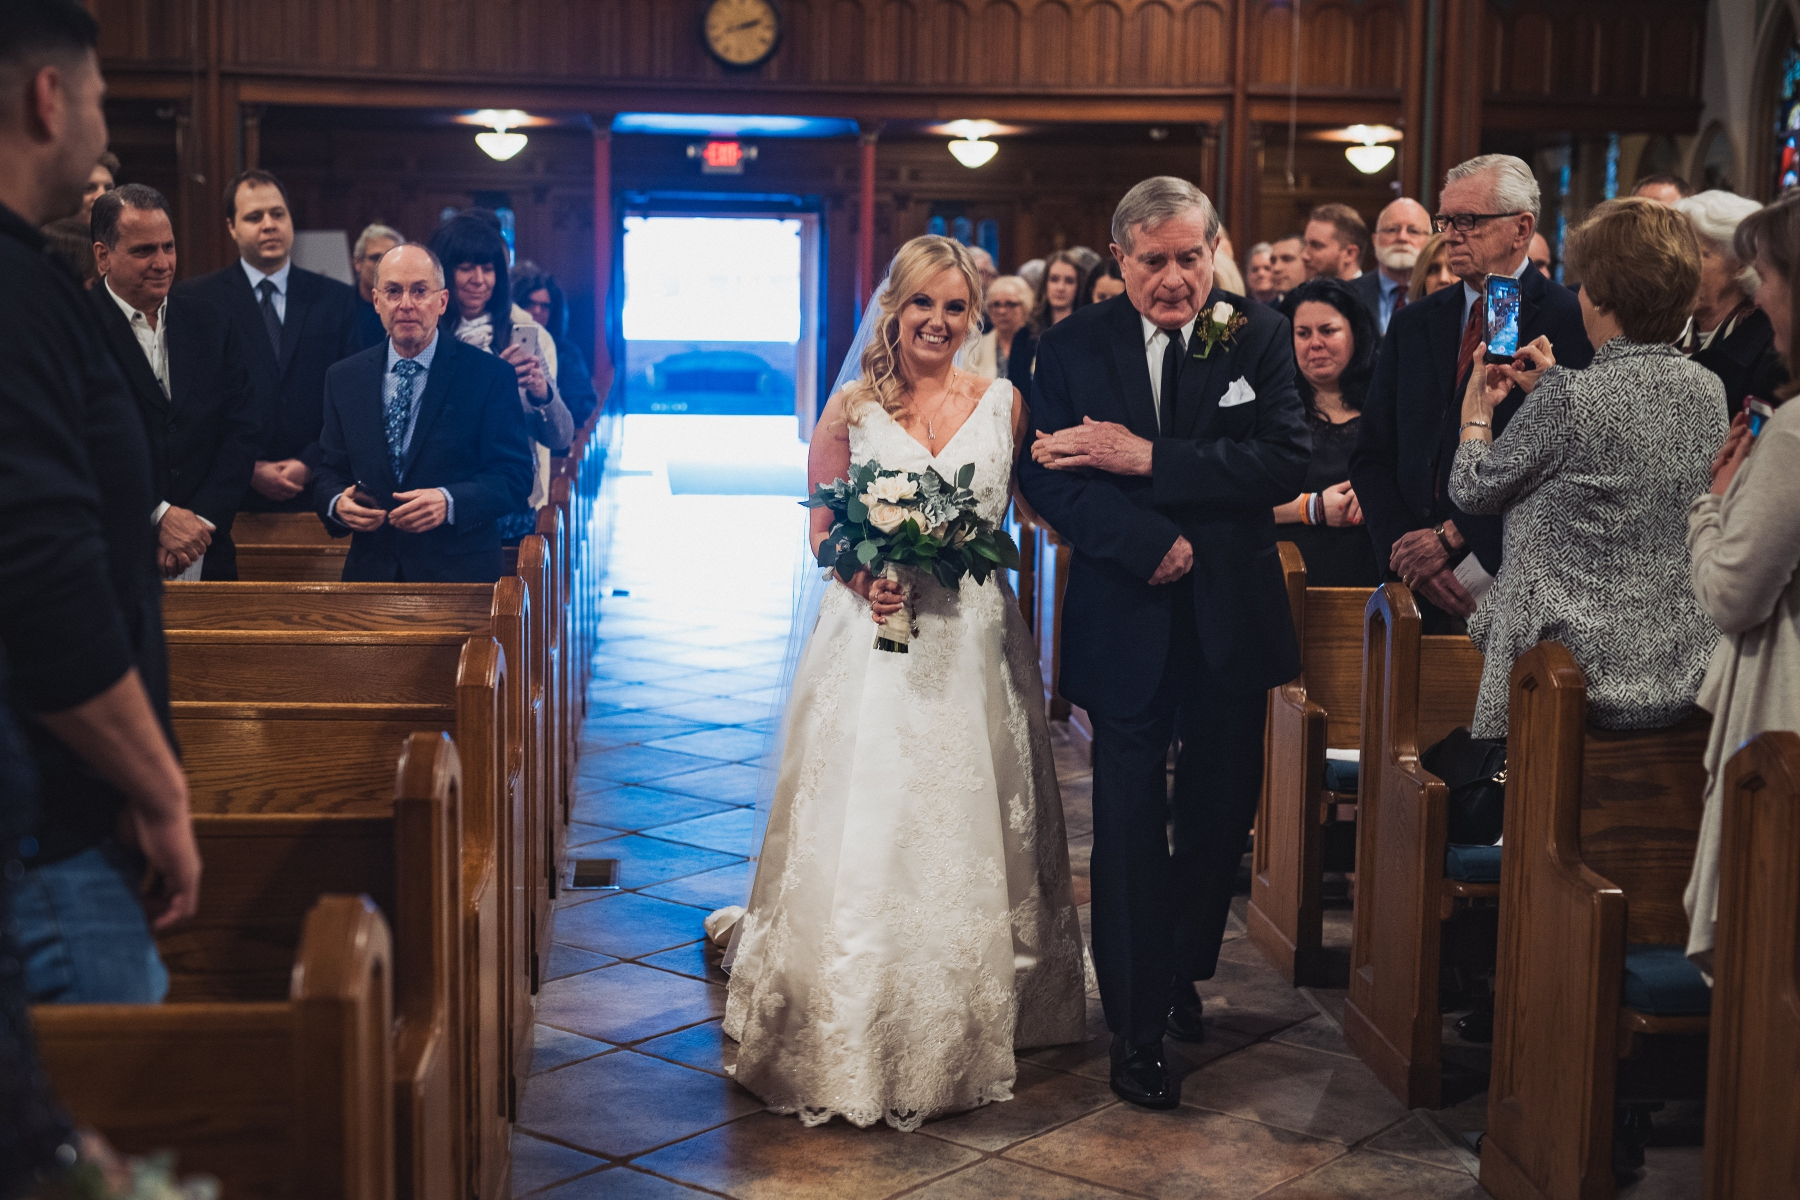 Tara's father walking her down the aisle for her New York wedding in Nyack.